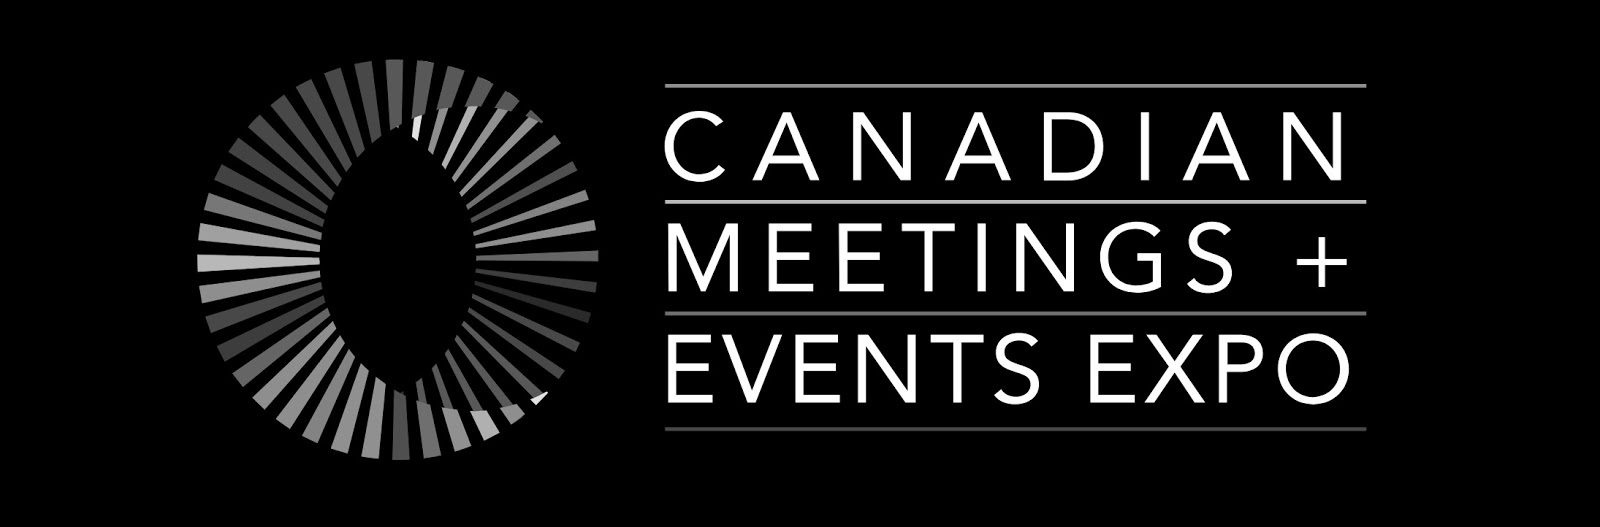 August 18-19: Canadian Meetings & Events Expo